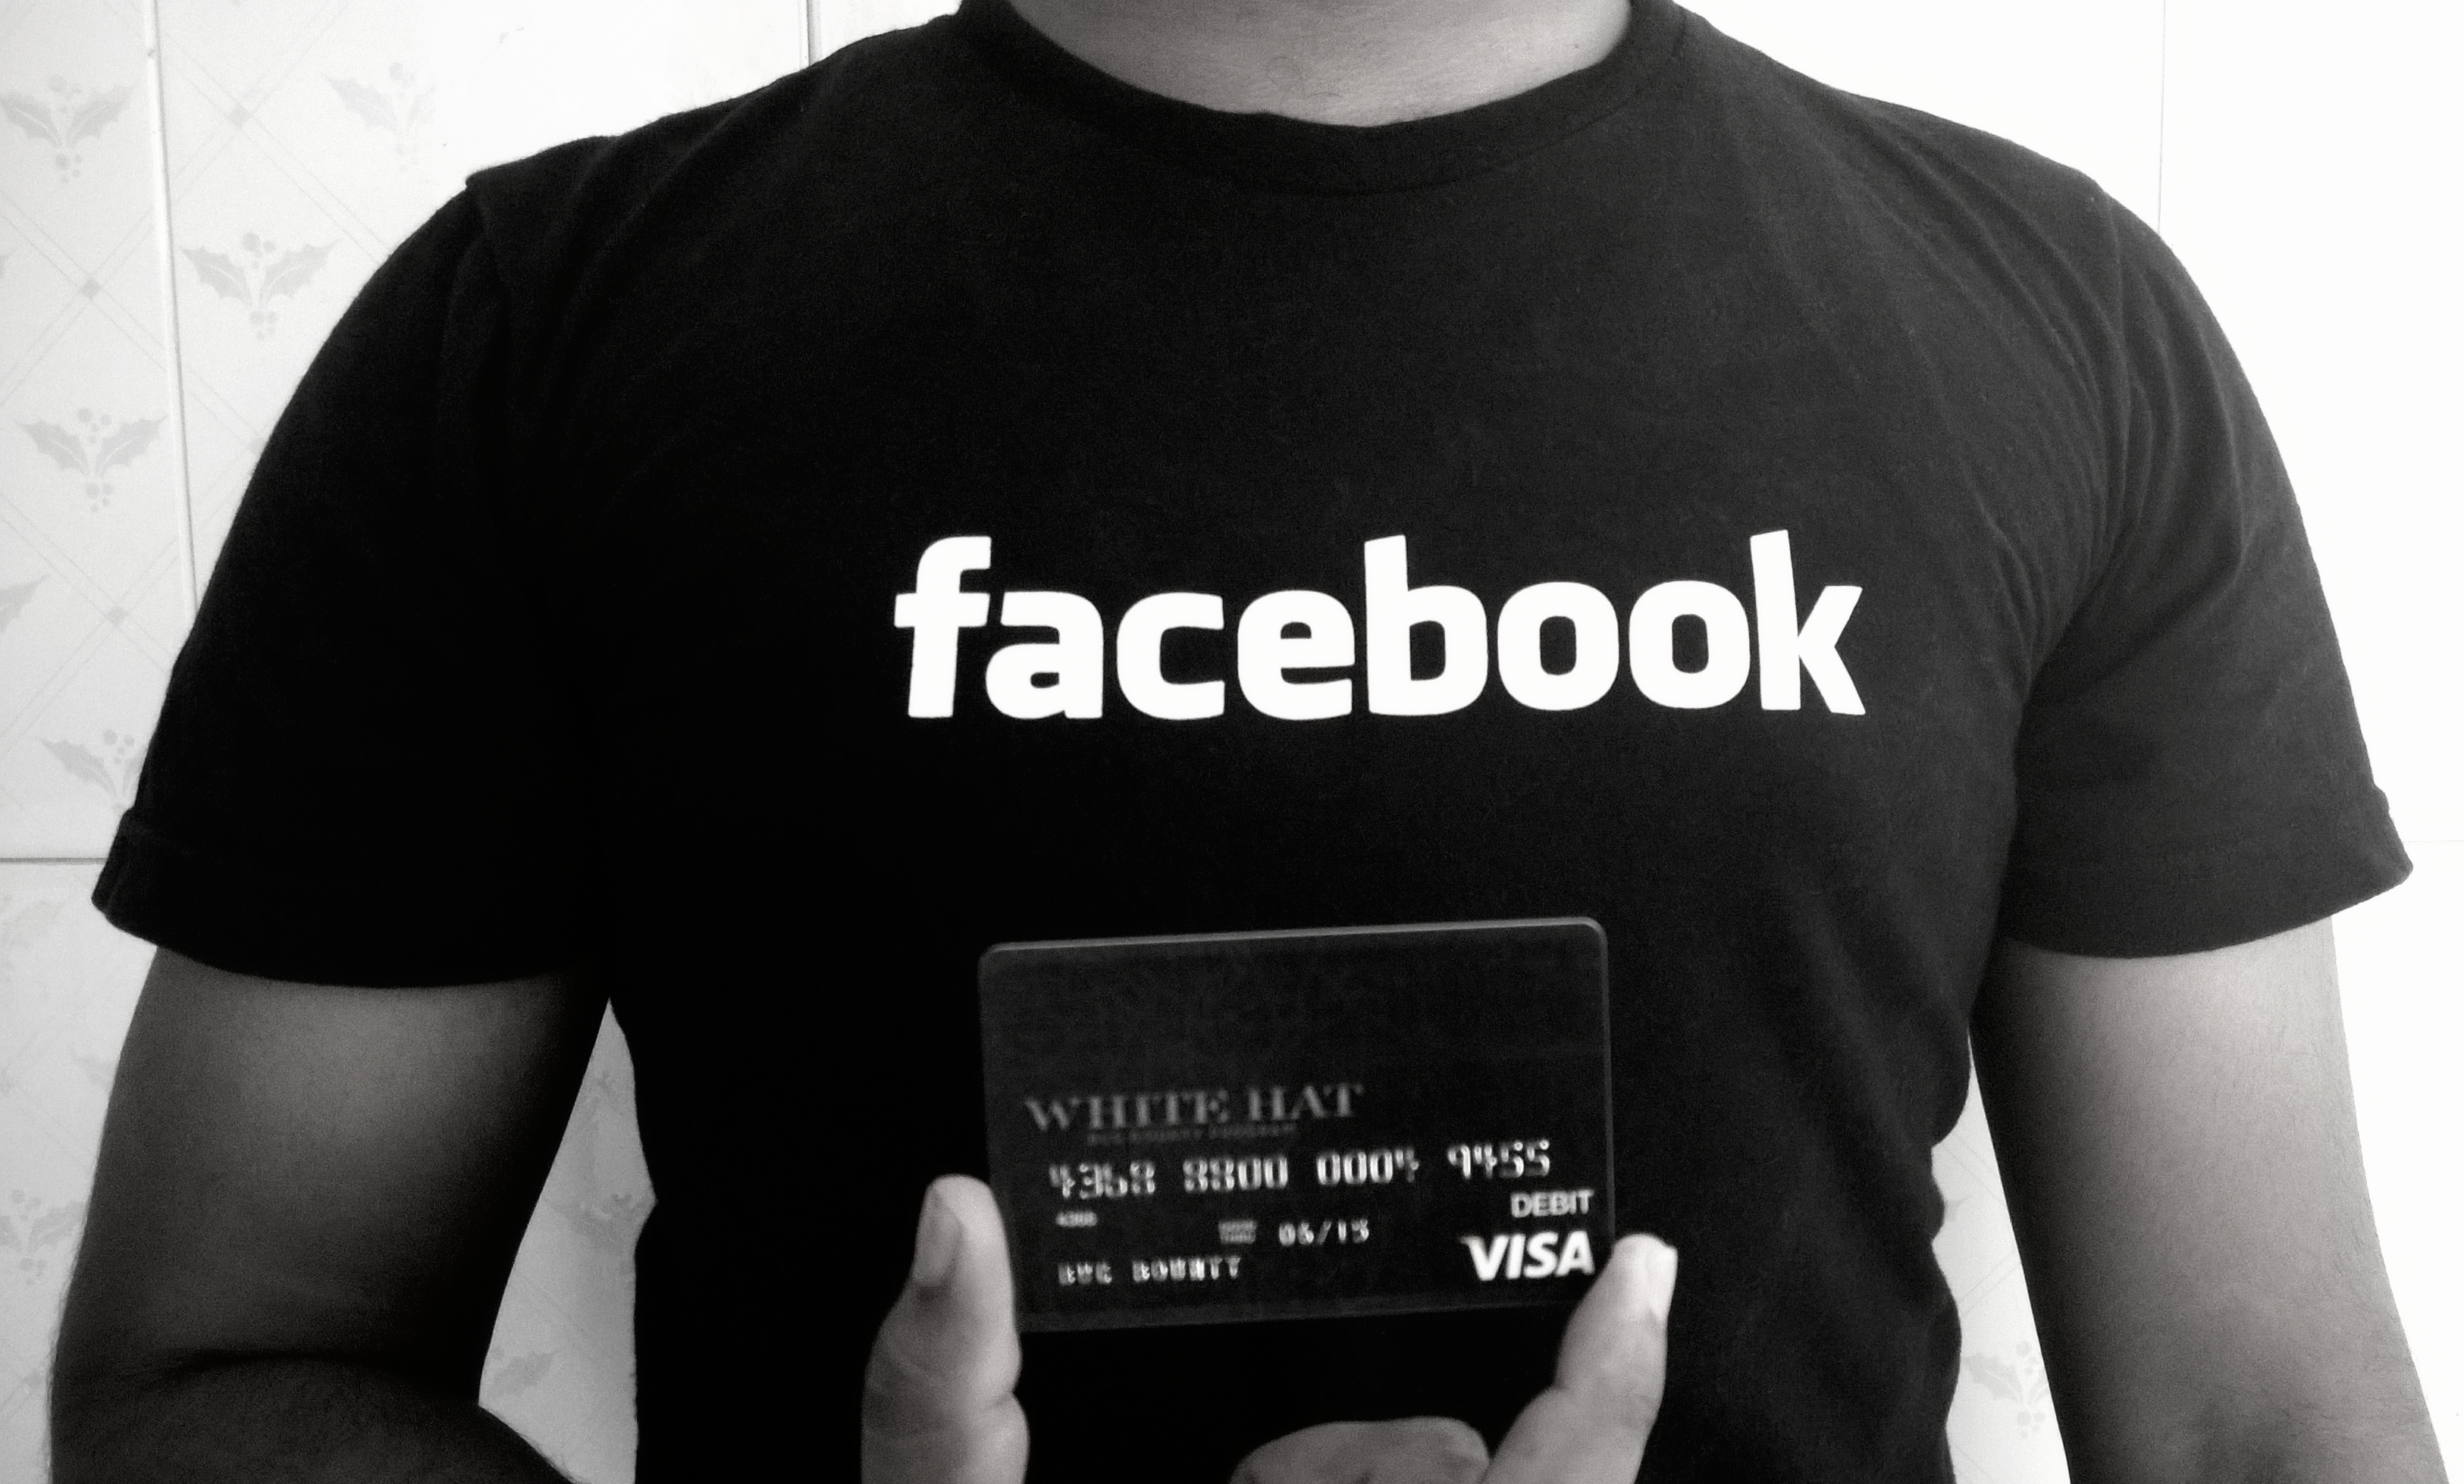 Facebook giving away T-shirts and debit cards to security researchers